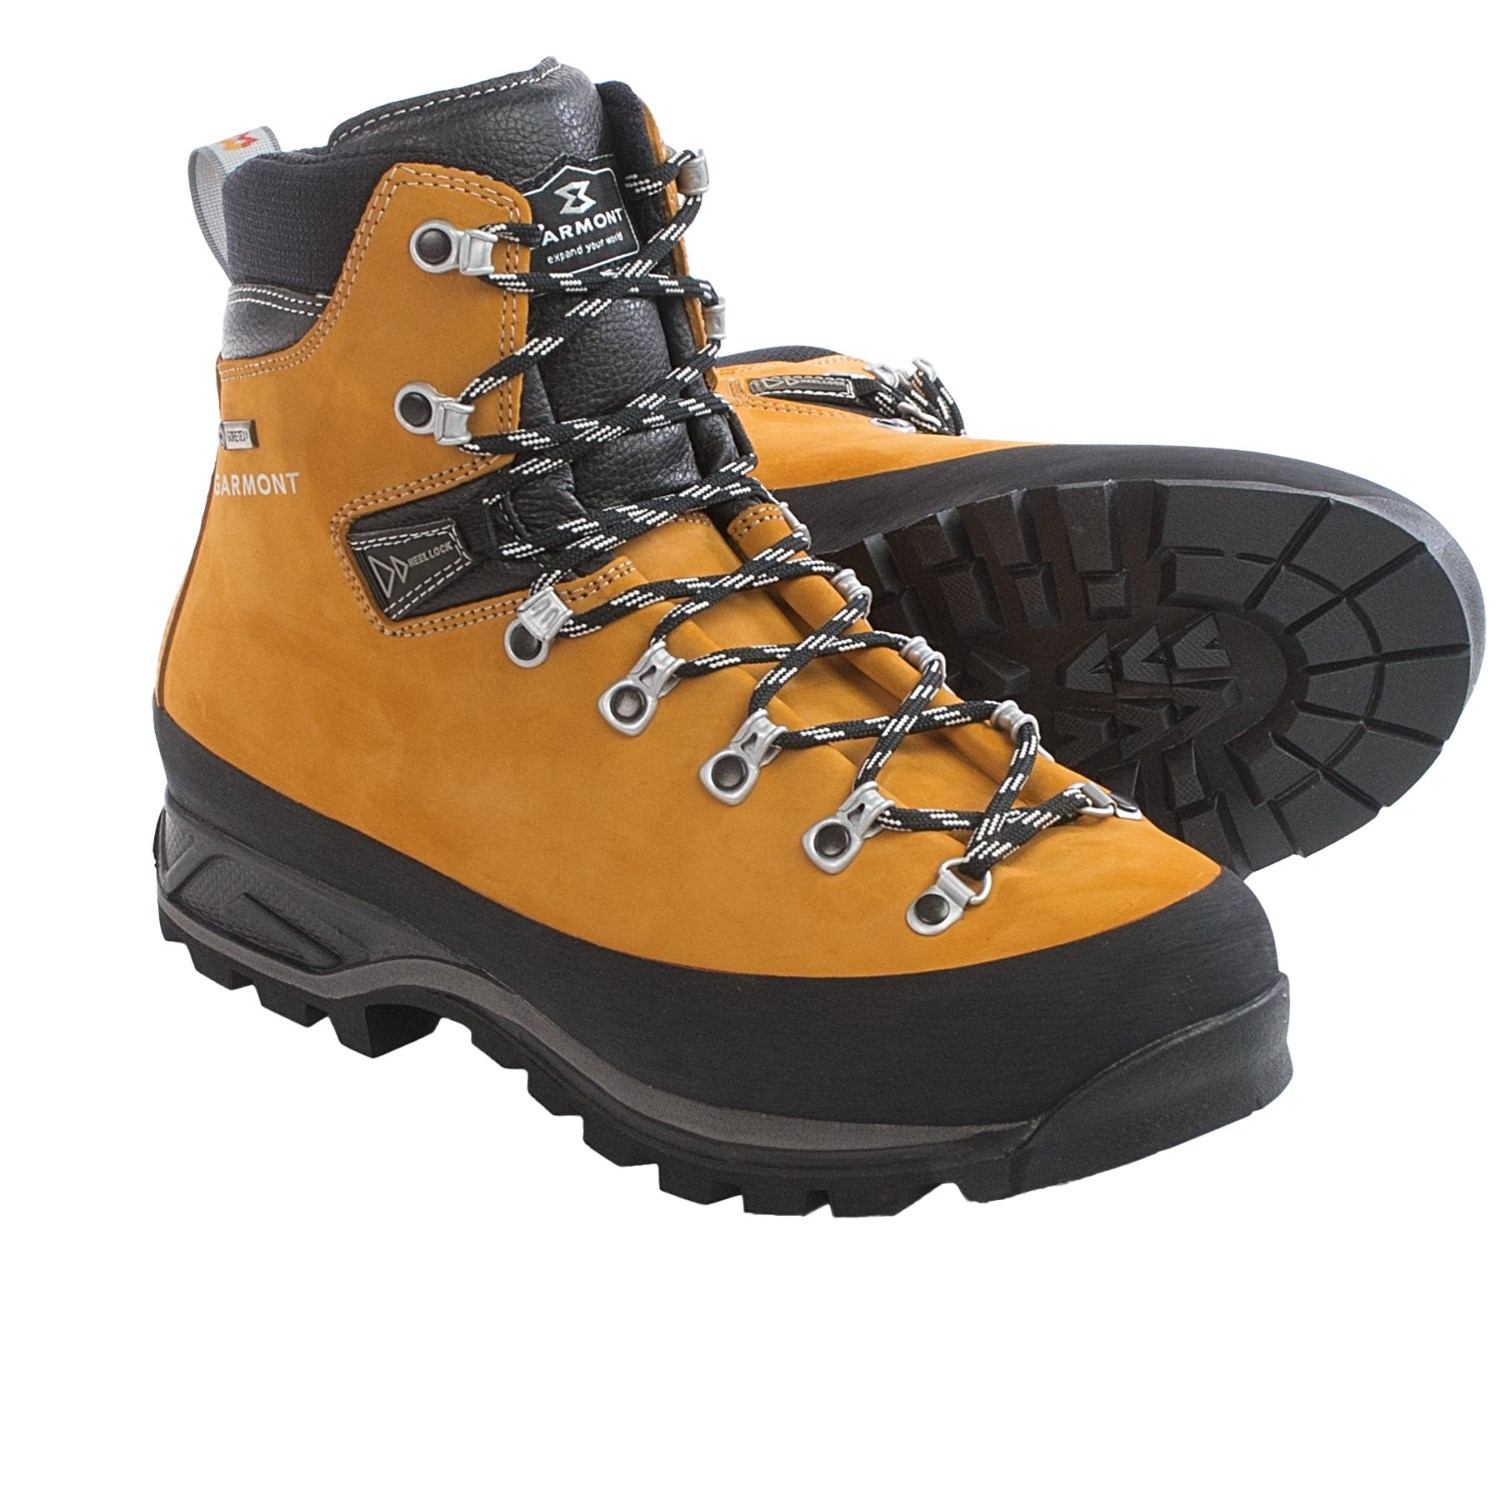 Garmont Antelao Gore Tex 174 Hiking Boots For Men Save 44